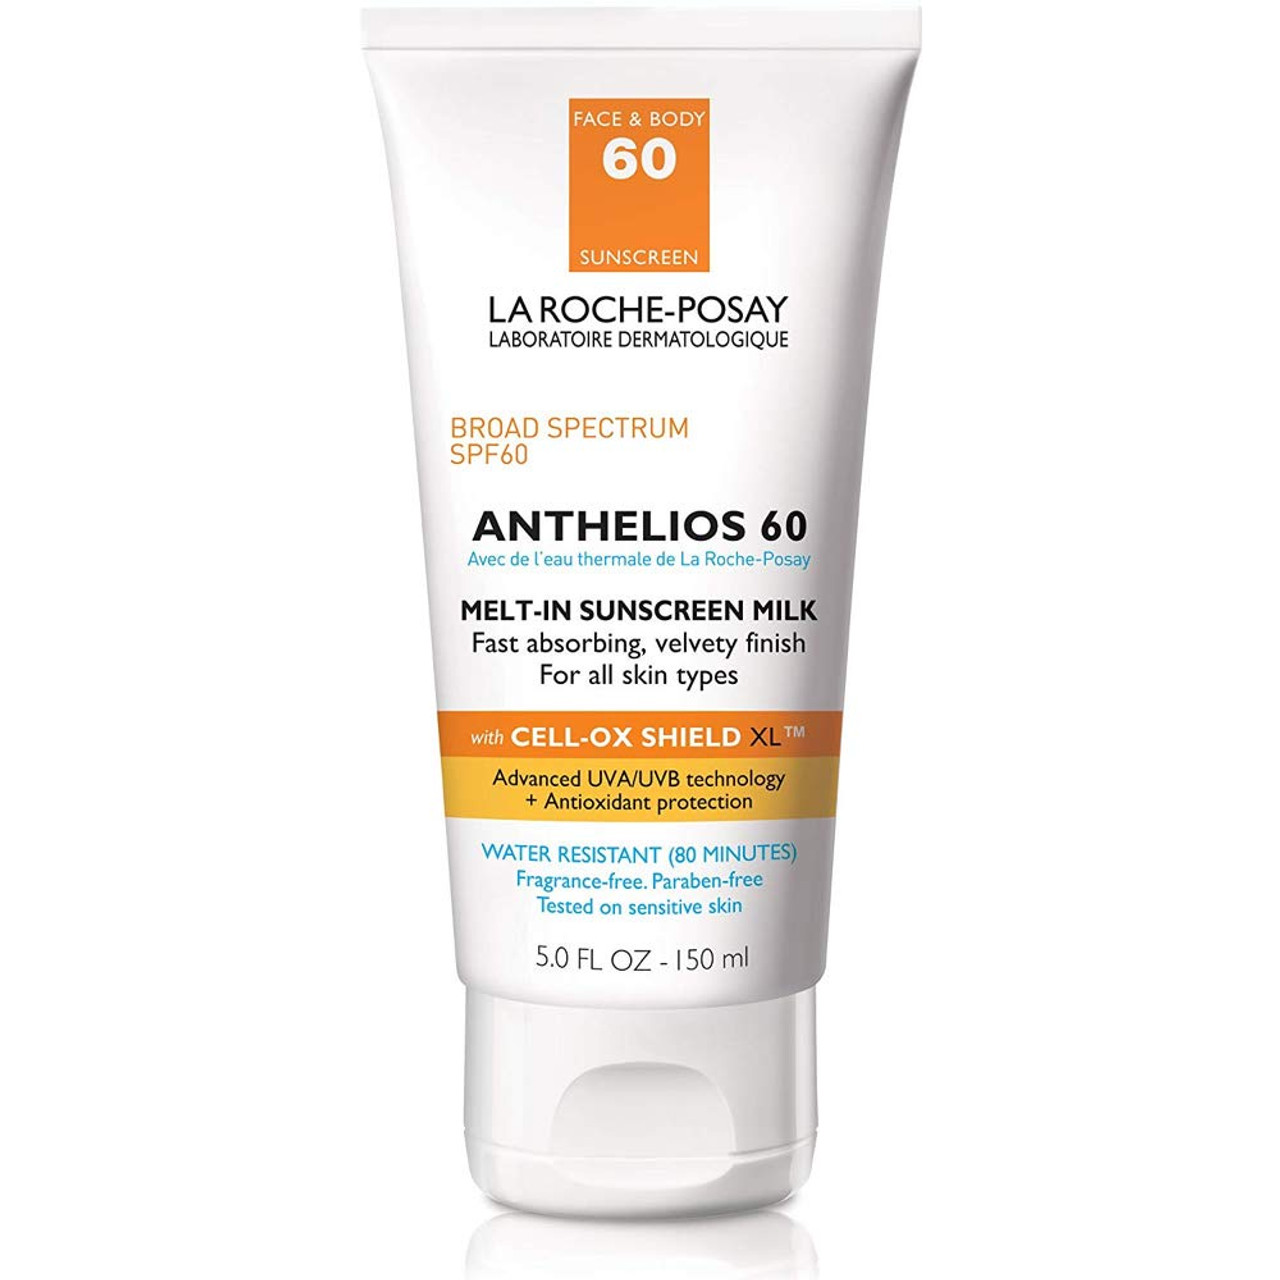 La Roche Posay Anthelios Melt-In Sunscreen Milk SPF 60